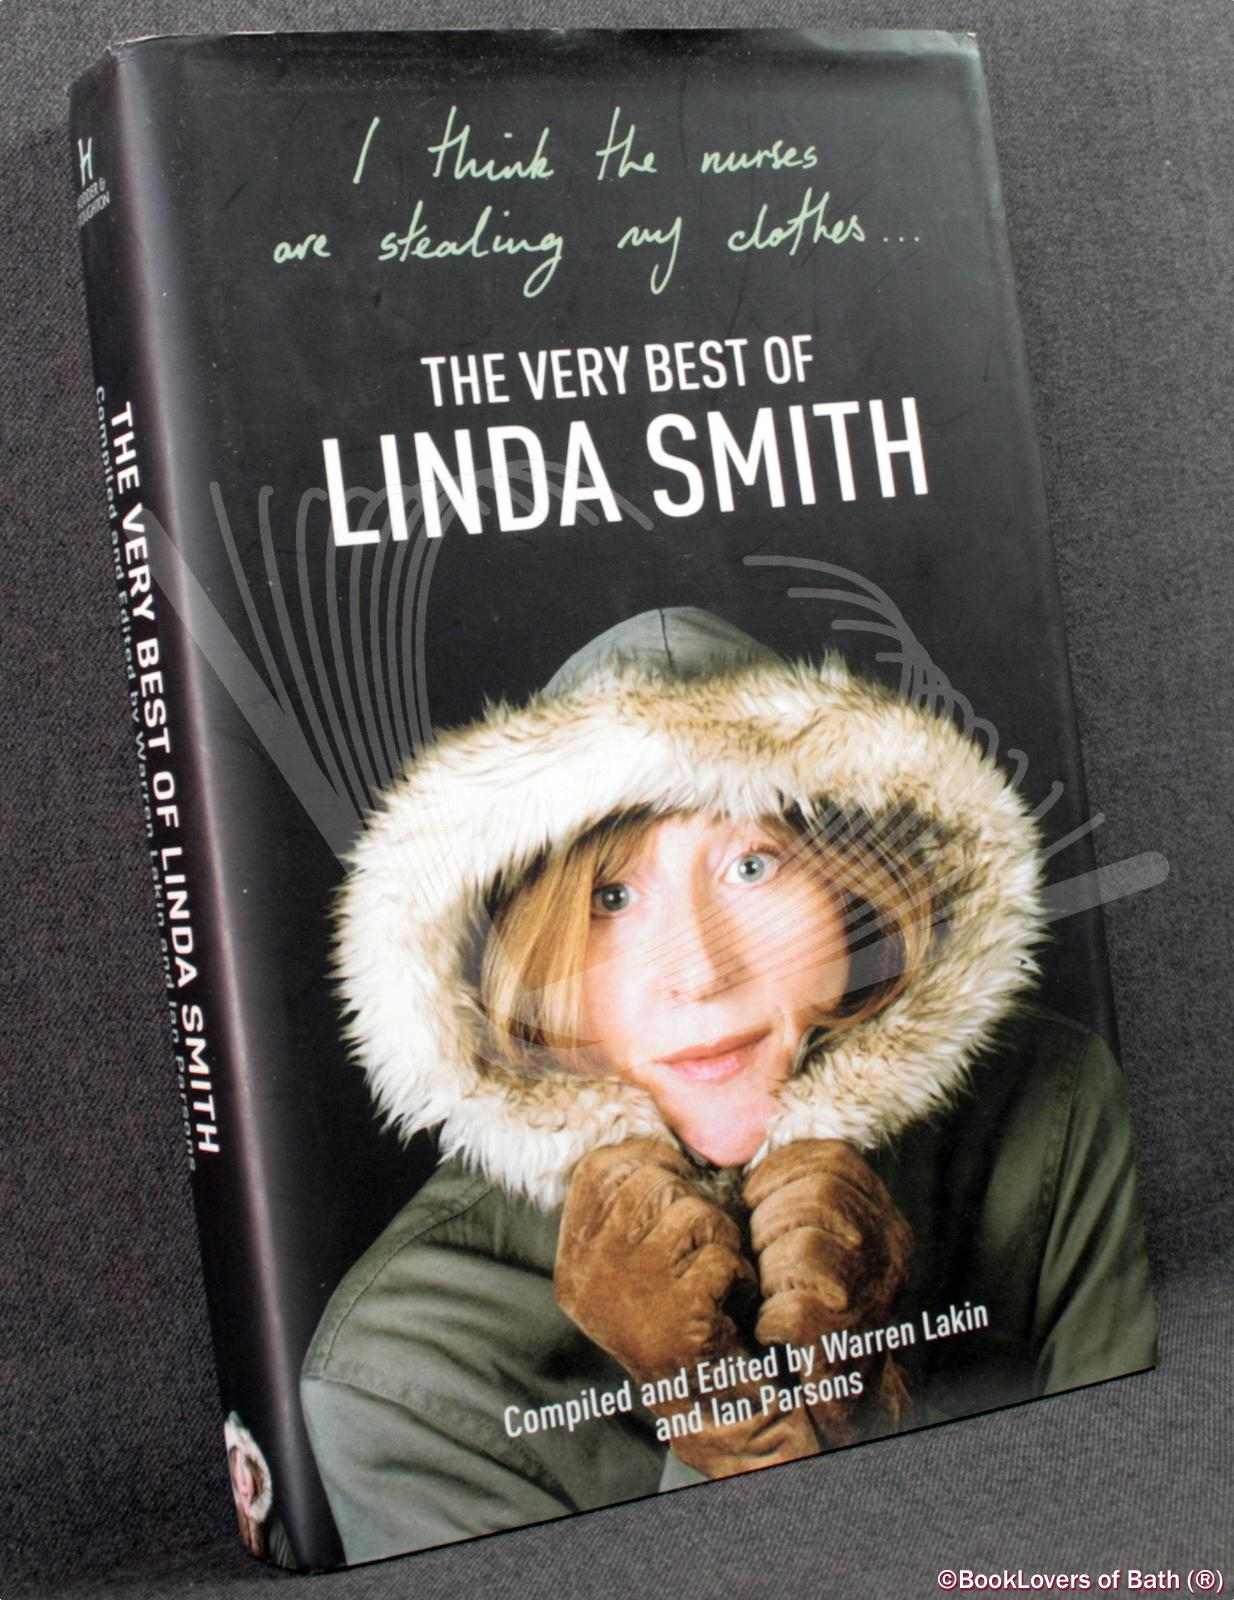 I Think the Nurses Are Stealing My Clothes: The Very Best of Linda Smith - Compiled, edited by Warren Lakin & Ian Parsons